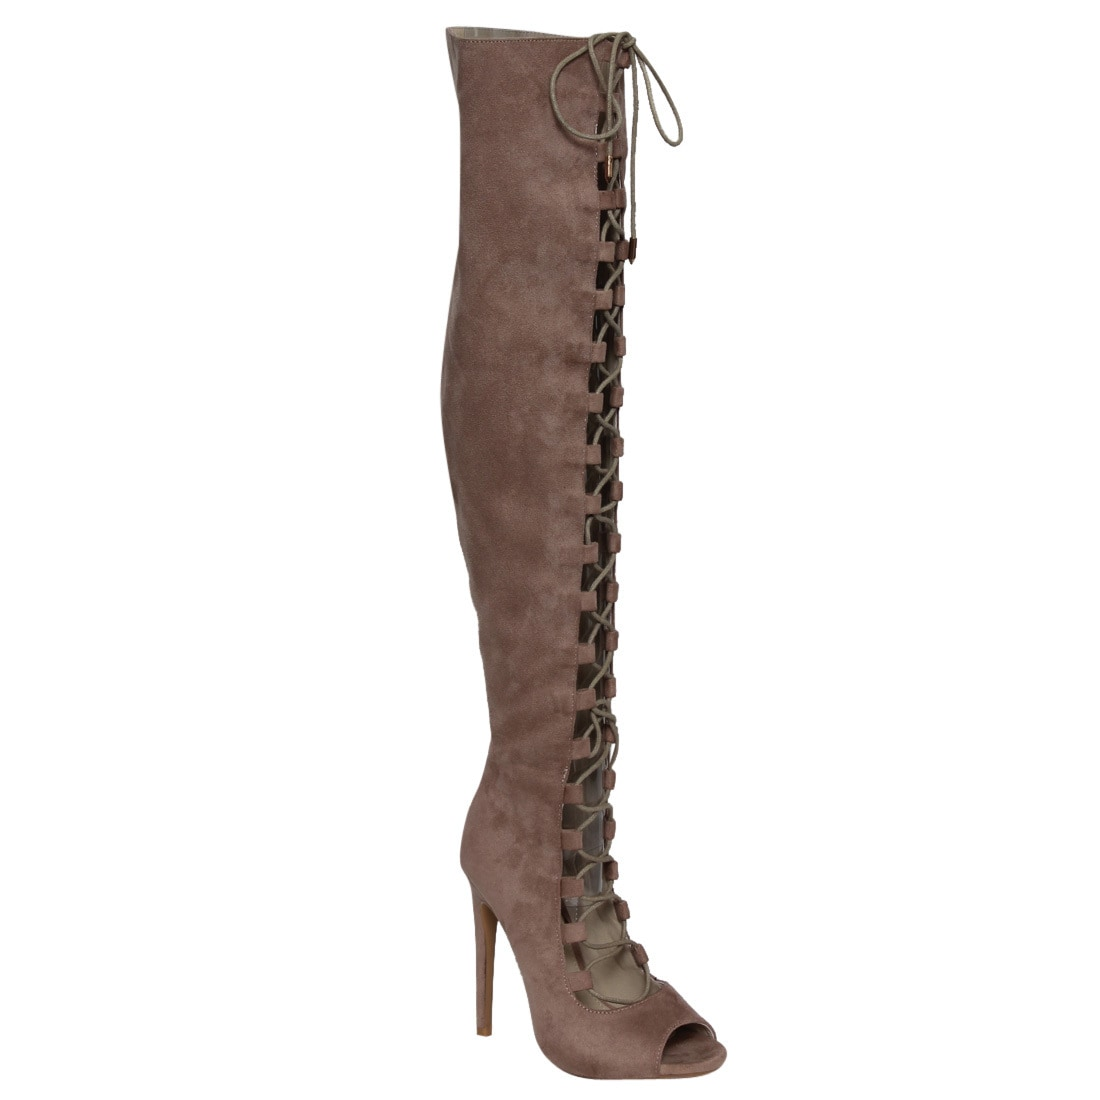 M&L EG28 Women's Over-the-knee-high Lace-up Inside-zipper...